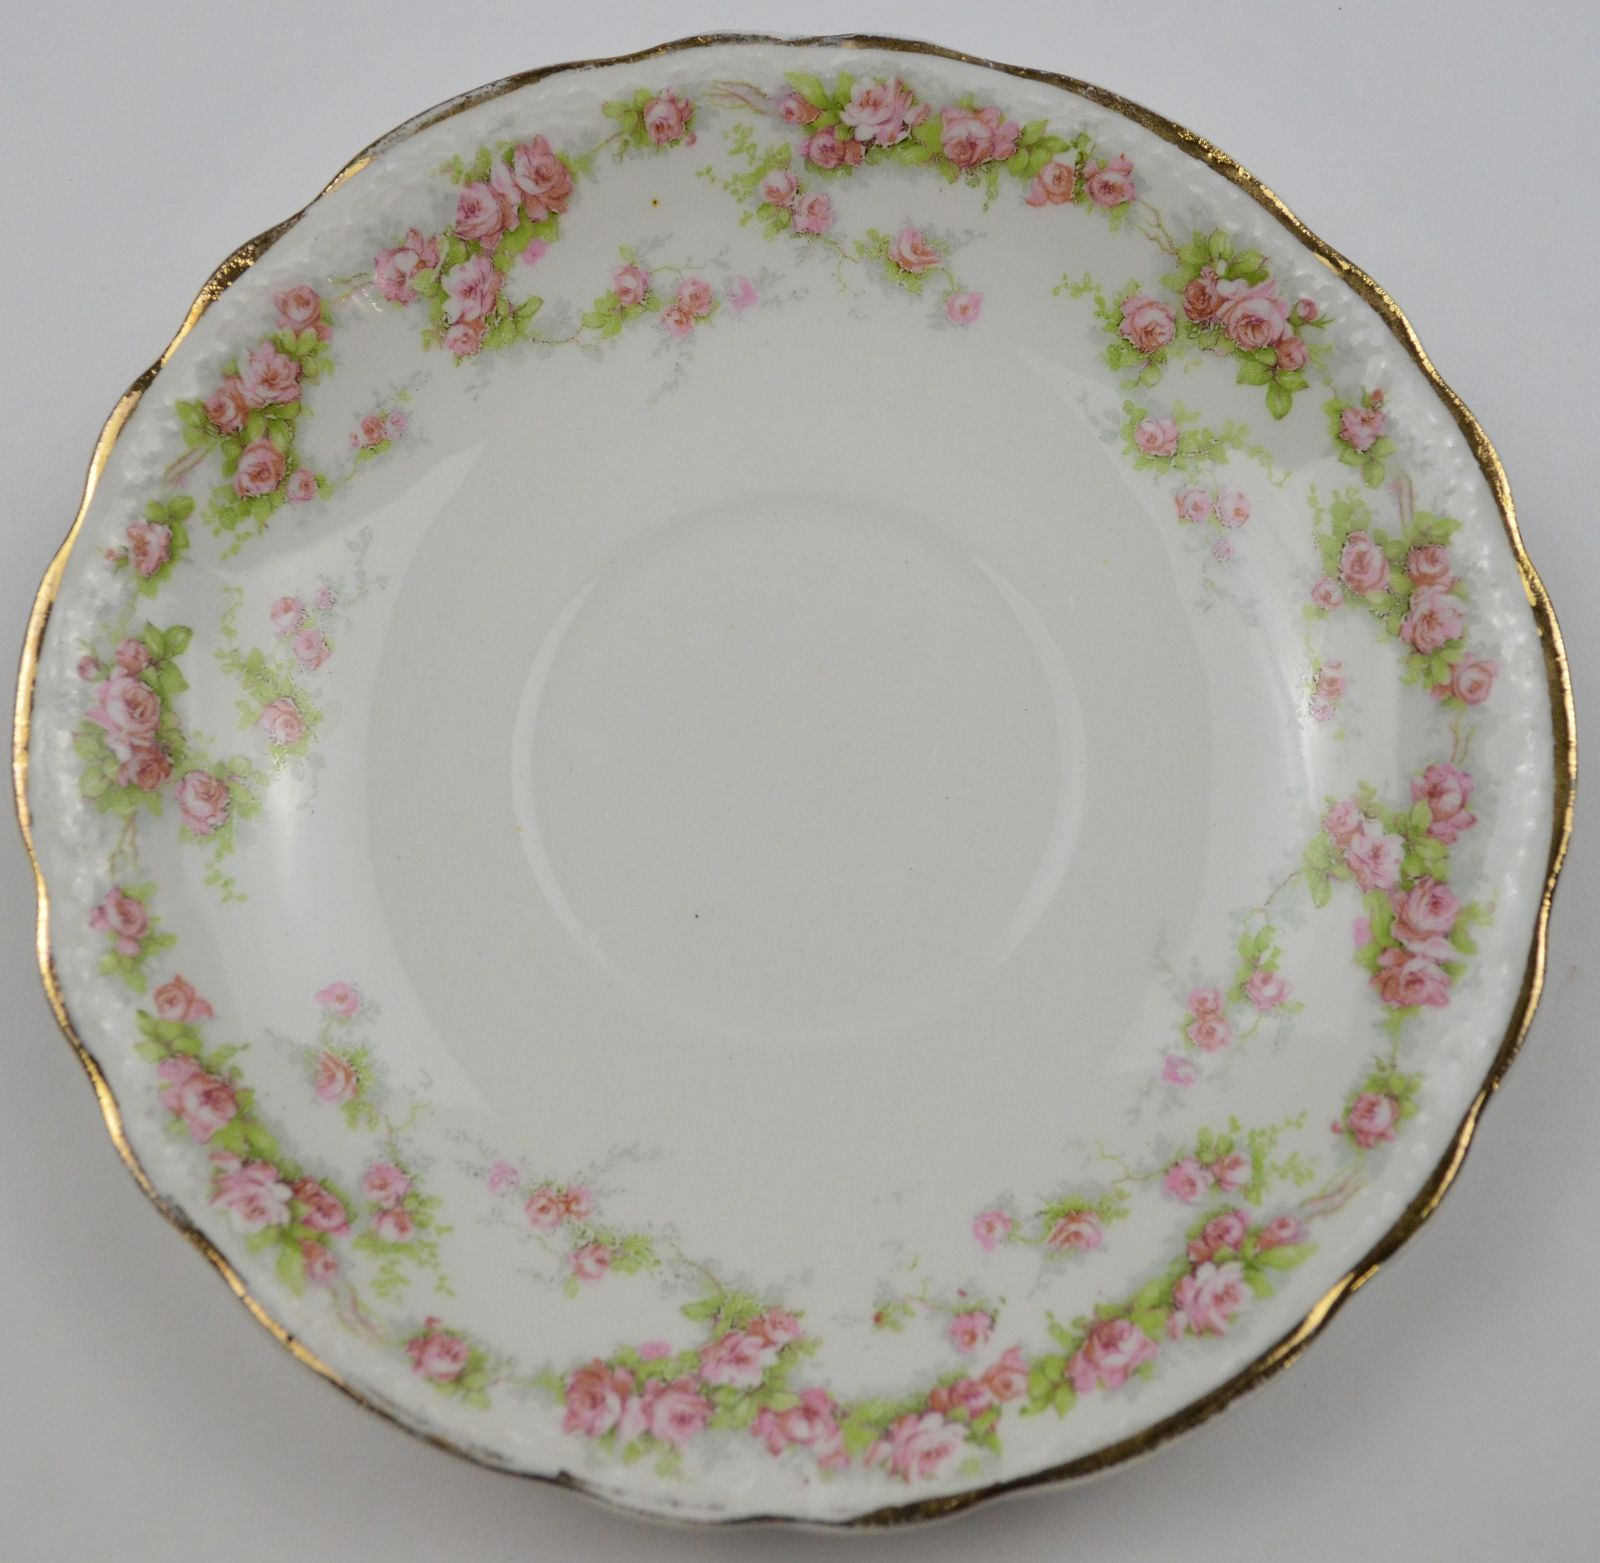 Antique China Patterns Value Vintage Homer Laughlin China Hudson Pink Floral Pattern Flat Cup